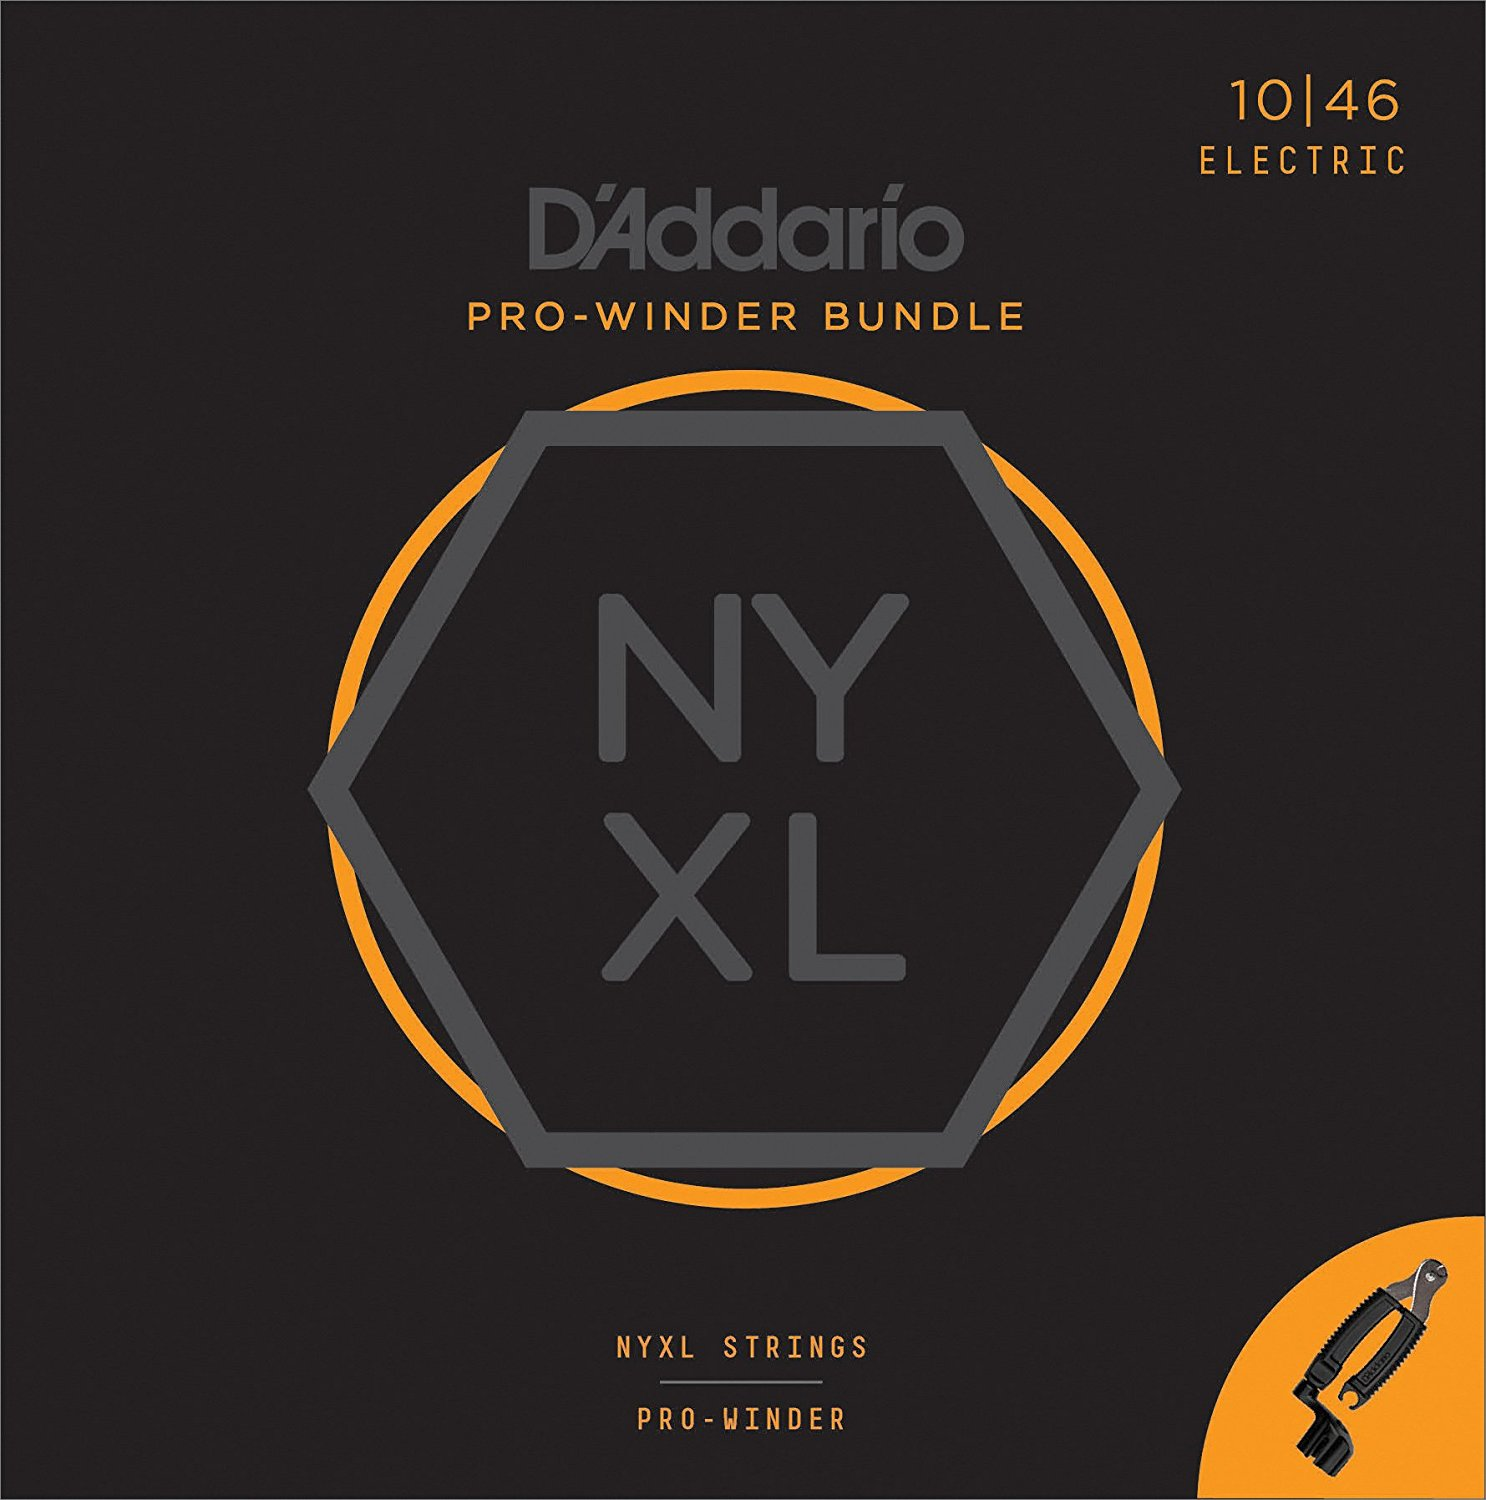 D 39 Addario NYXL1046 Nickel Wound Electric Guitar Strings Regular Light amp Pro Winder Bundle in Guitar Parts amp Accessories from Sports amp Entertainment